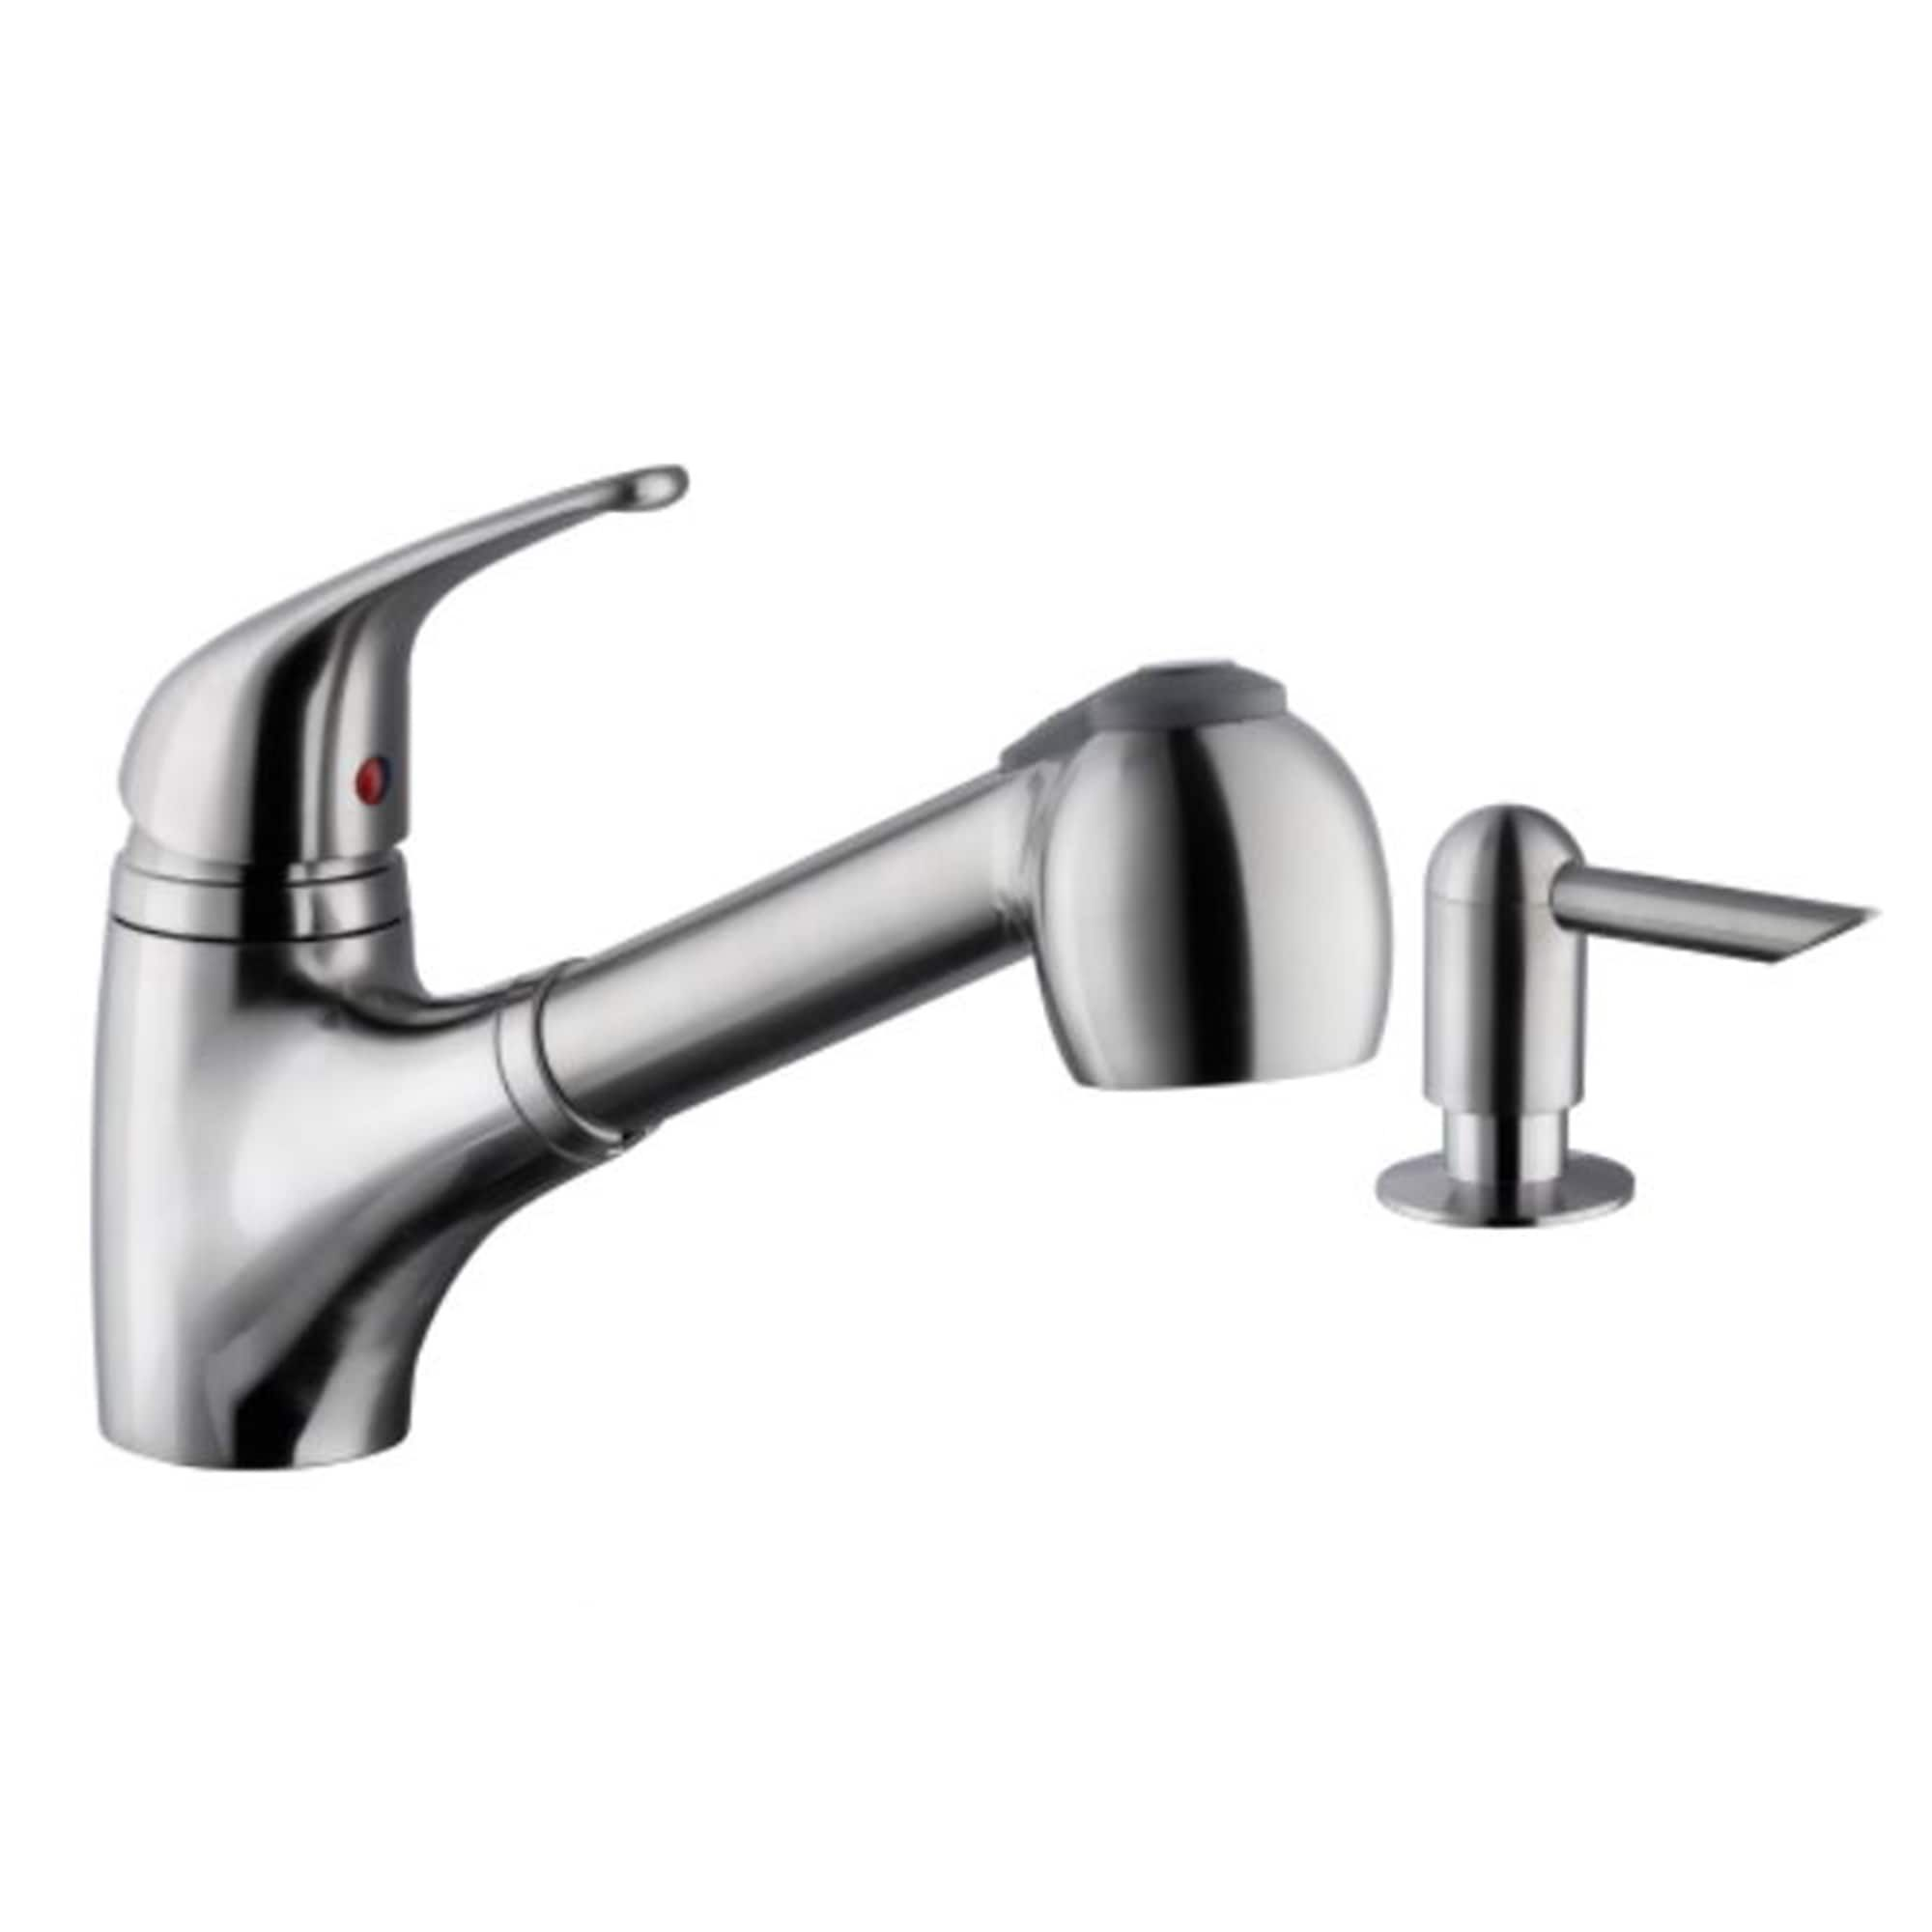 Low Profile Pull Out Kitchen Faucet With Dispenser In Brushed